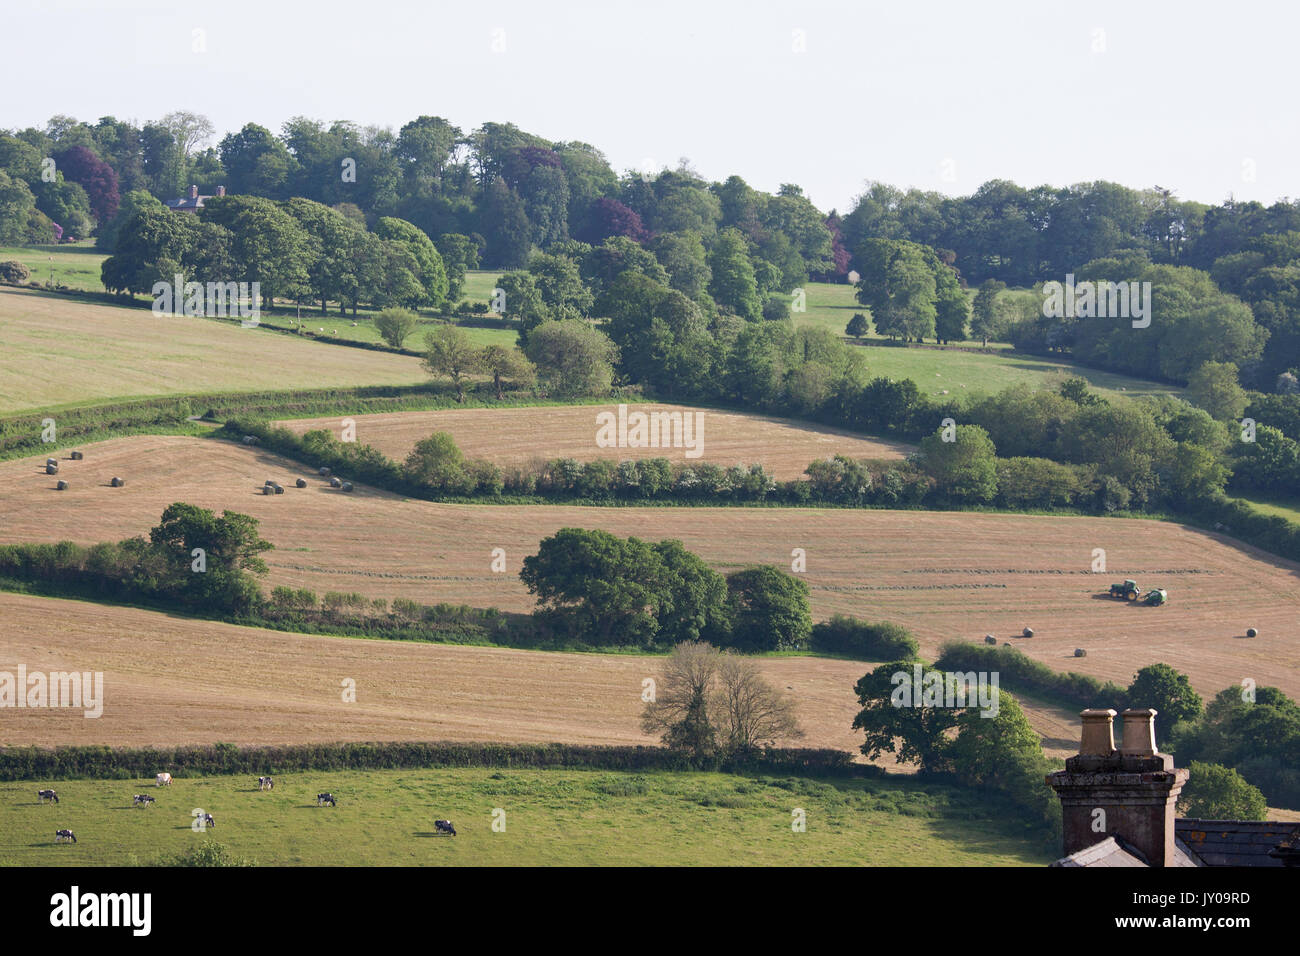 Farm scene during a late afternoon in early summer in the Torridge Valley at Great Torrington in North Devon UK - Stock Image